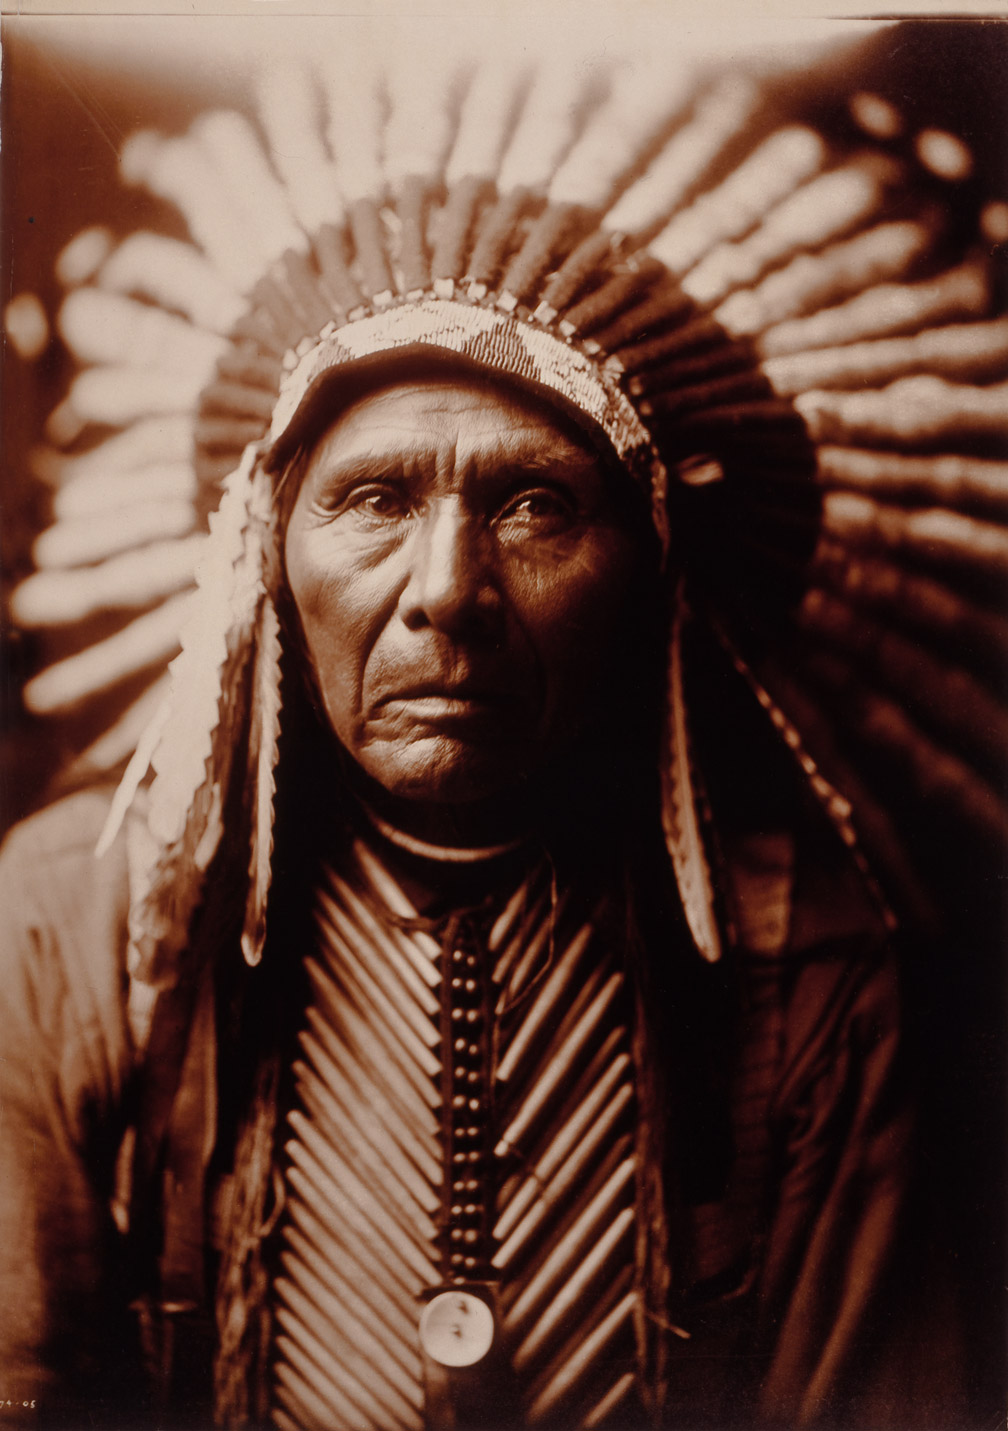 native americans american indian indians curtis chief edward america portrait headdress seattle head early portraits tribe were wearing natives sheriff